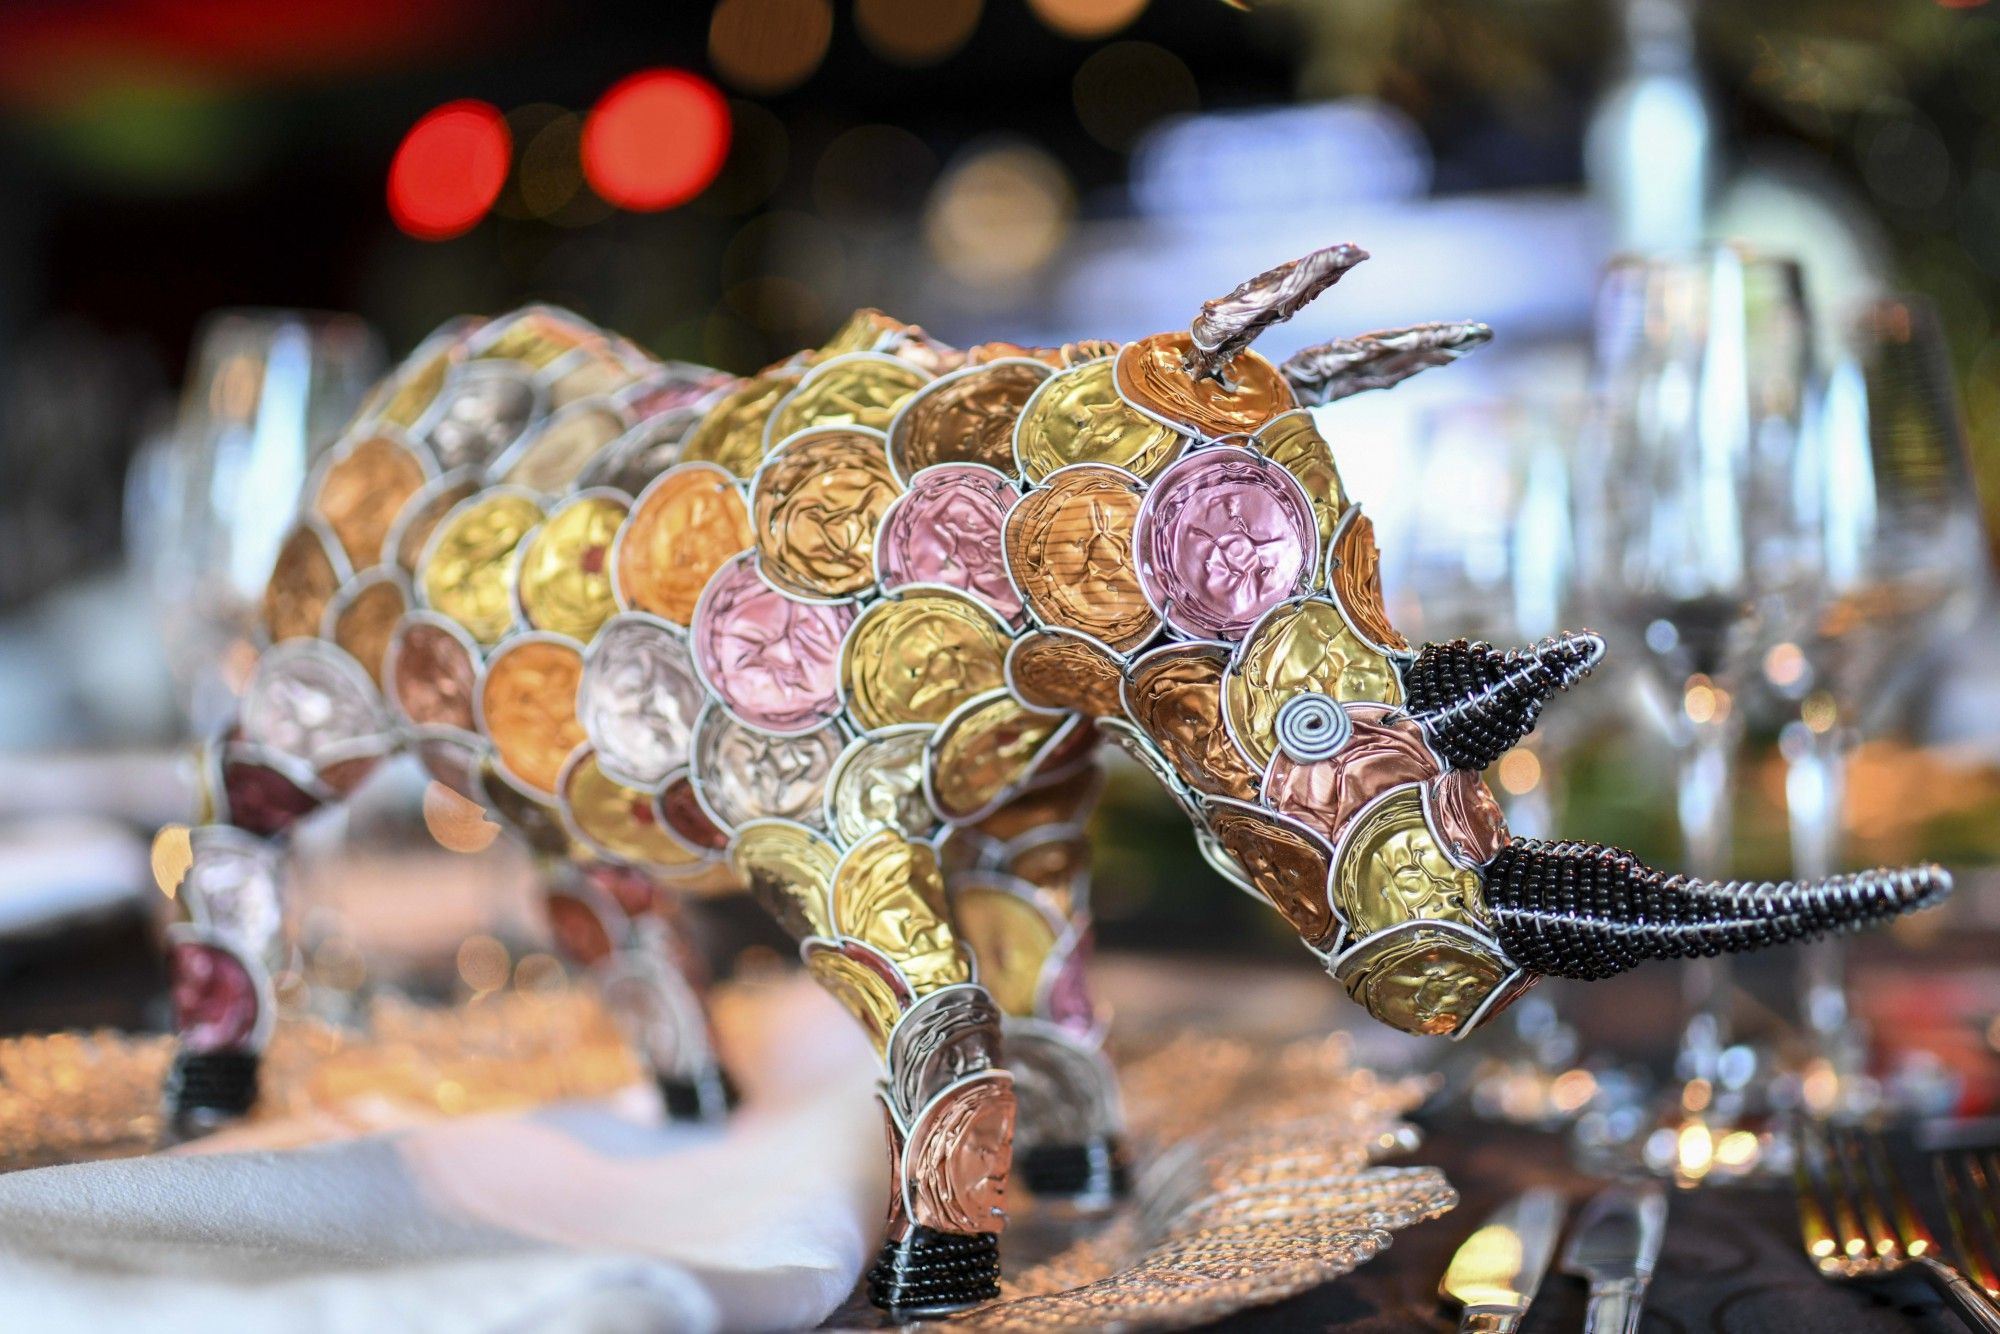 Miniature Rhino made by local artisans from recycled coffee capsules